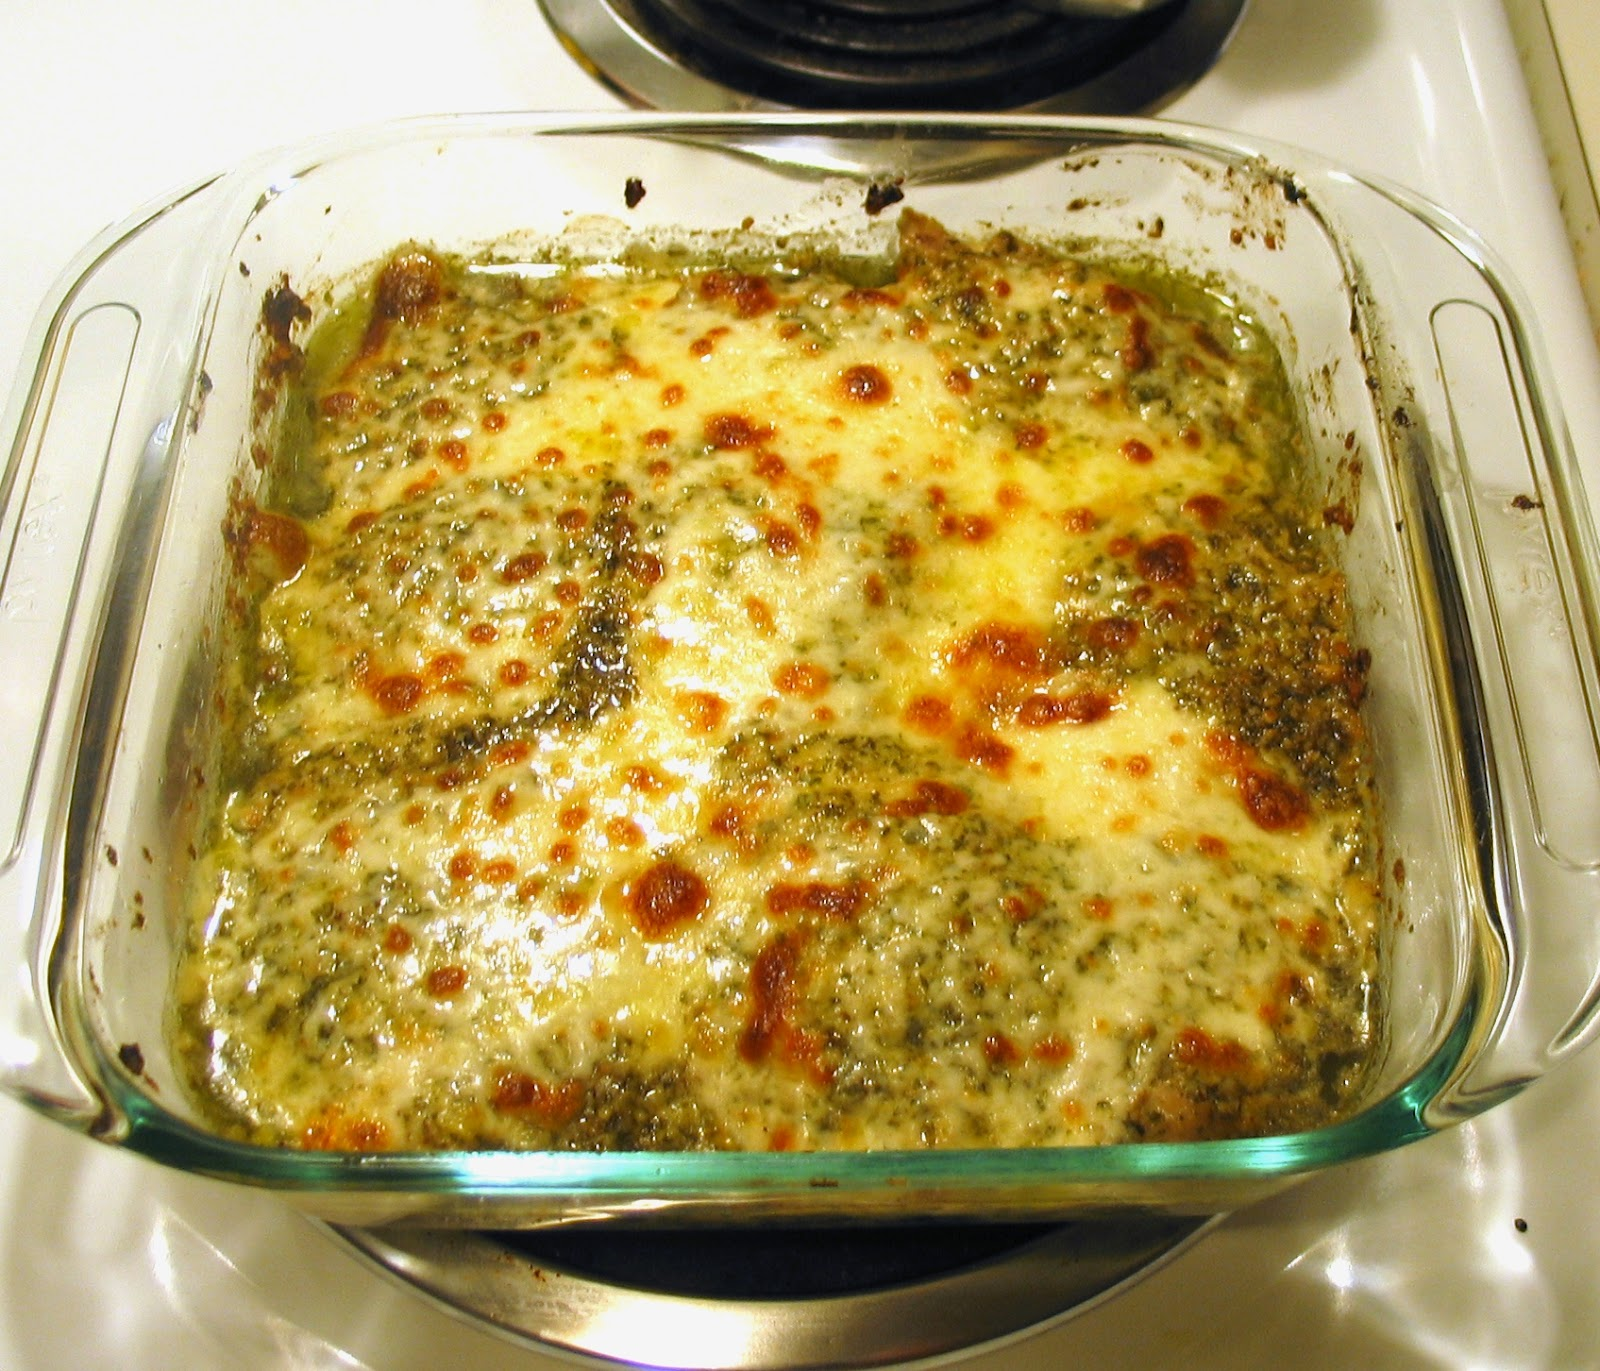 Starch Free Cookbook: Homemade Pesto & Baked Pesto Chicken